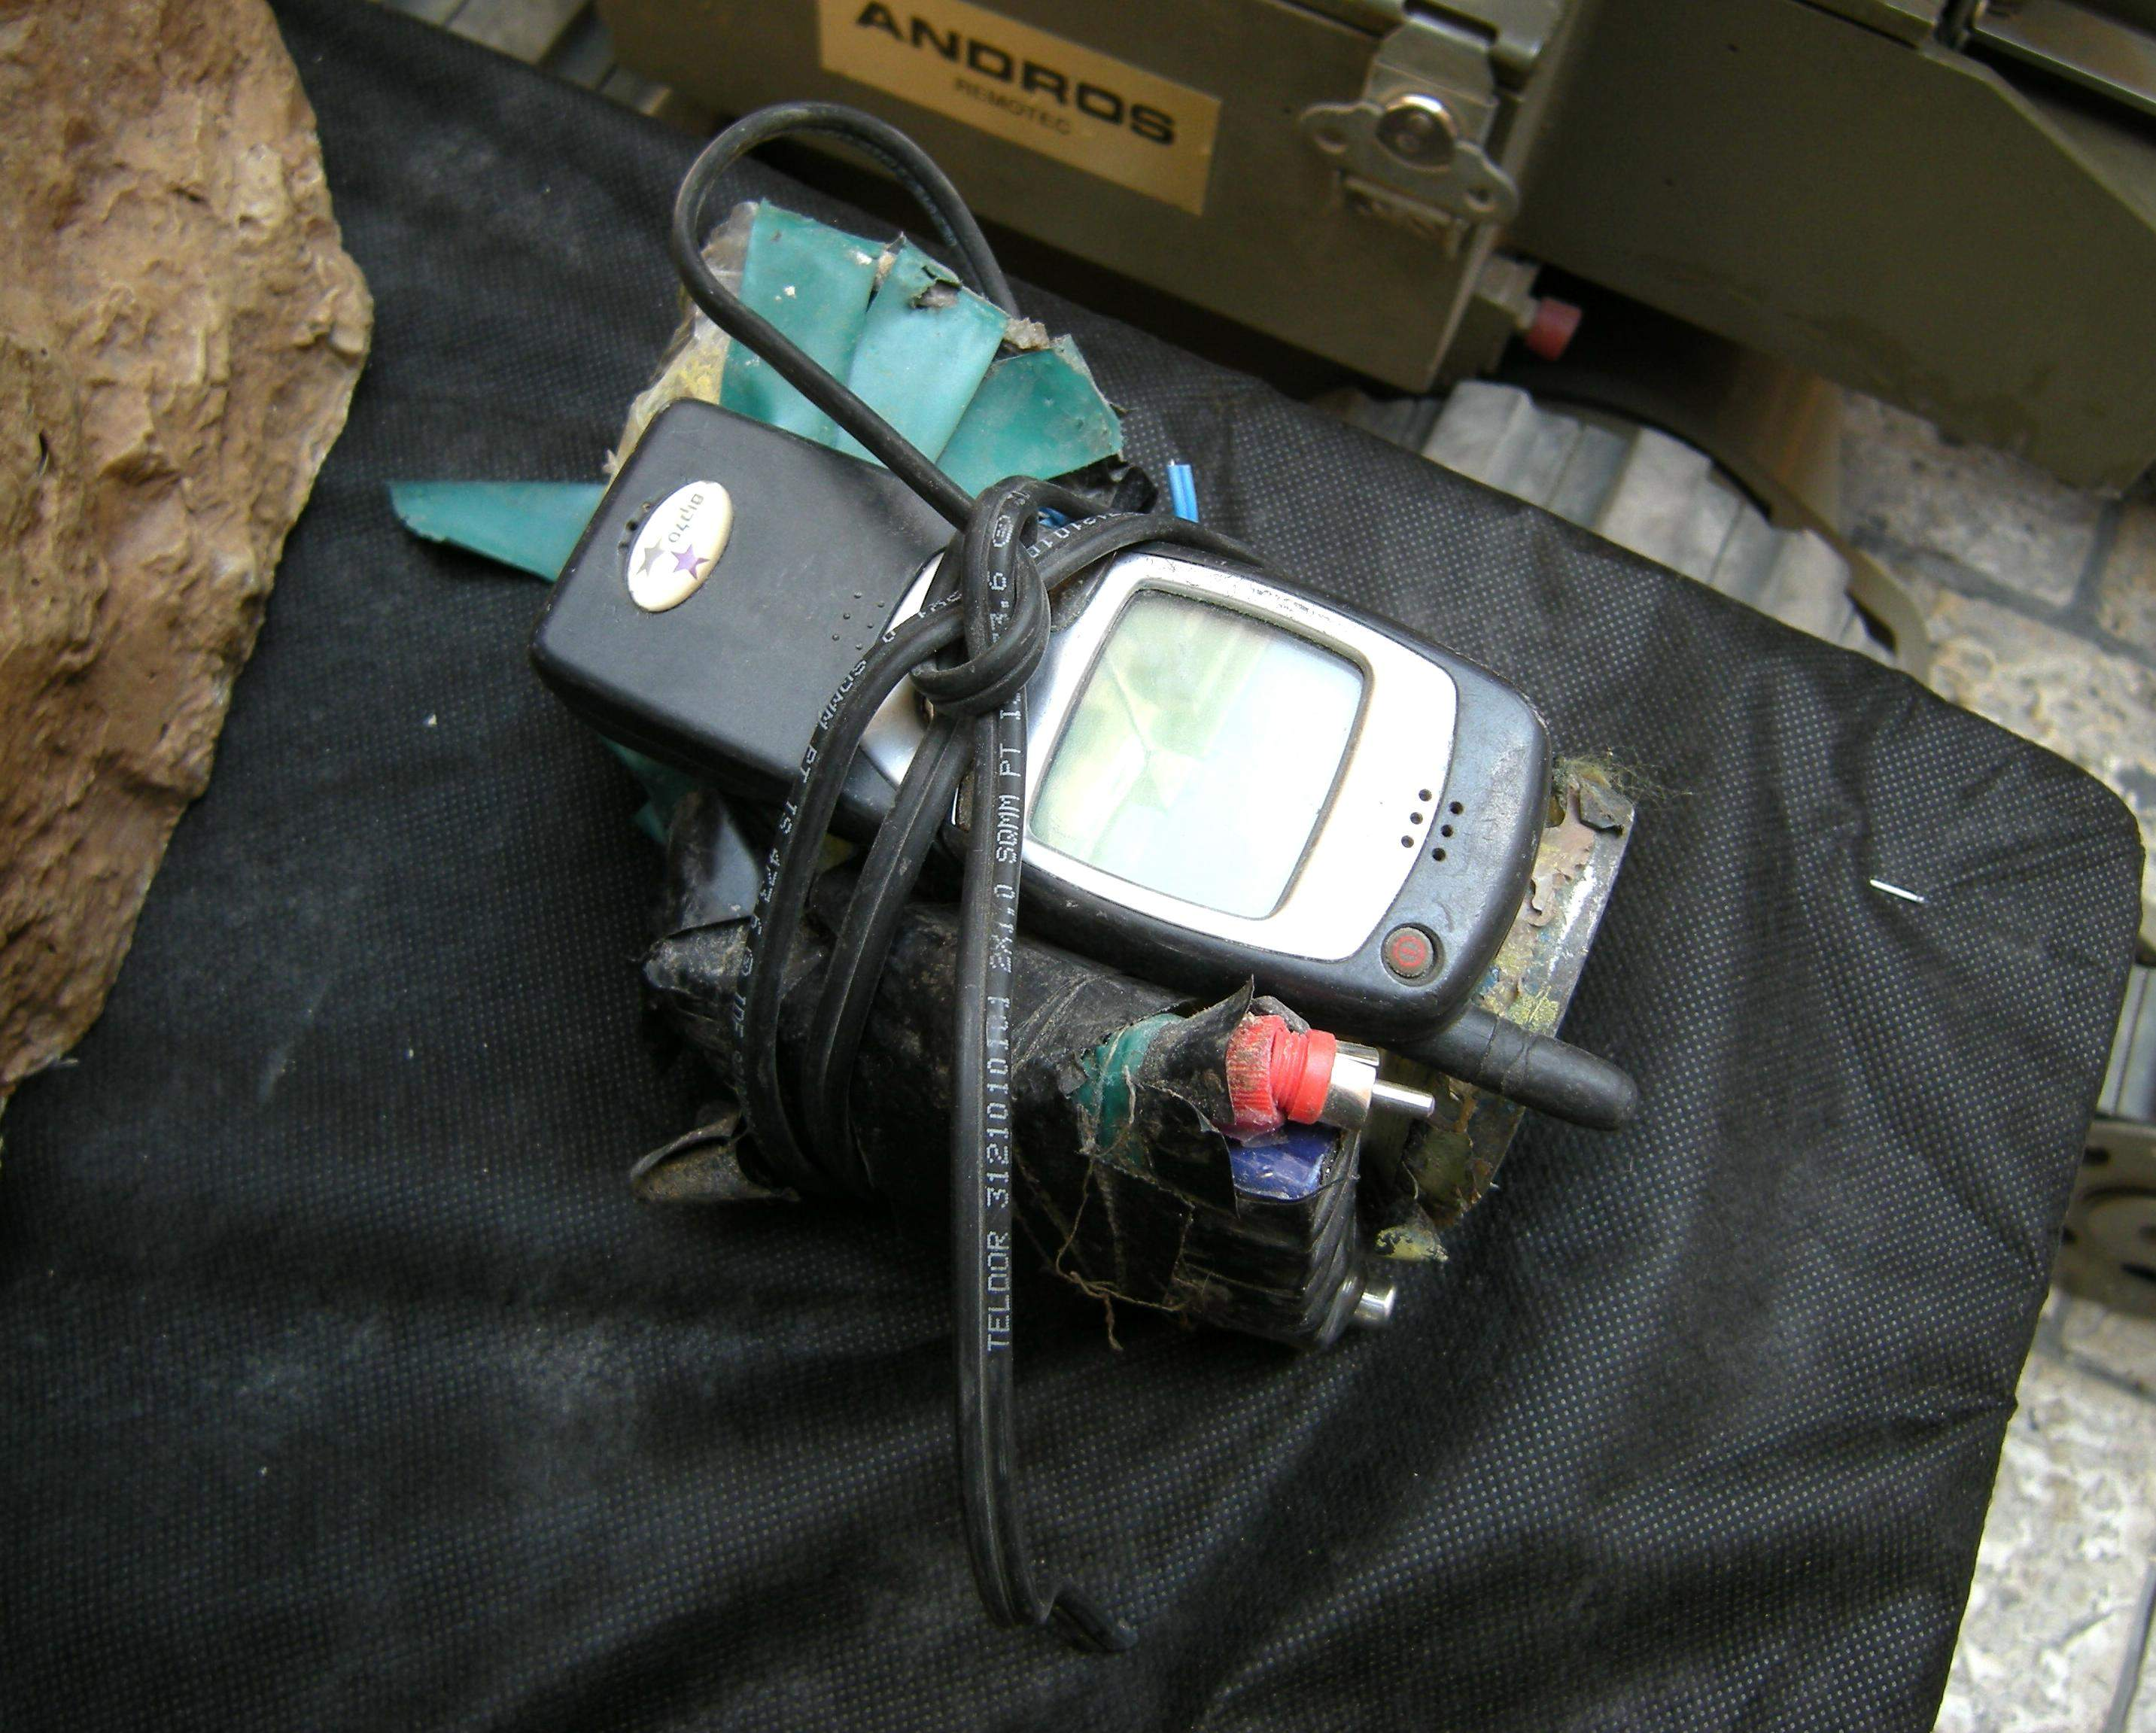 improvised explosive devices